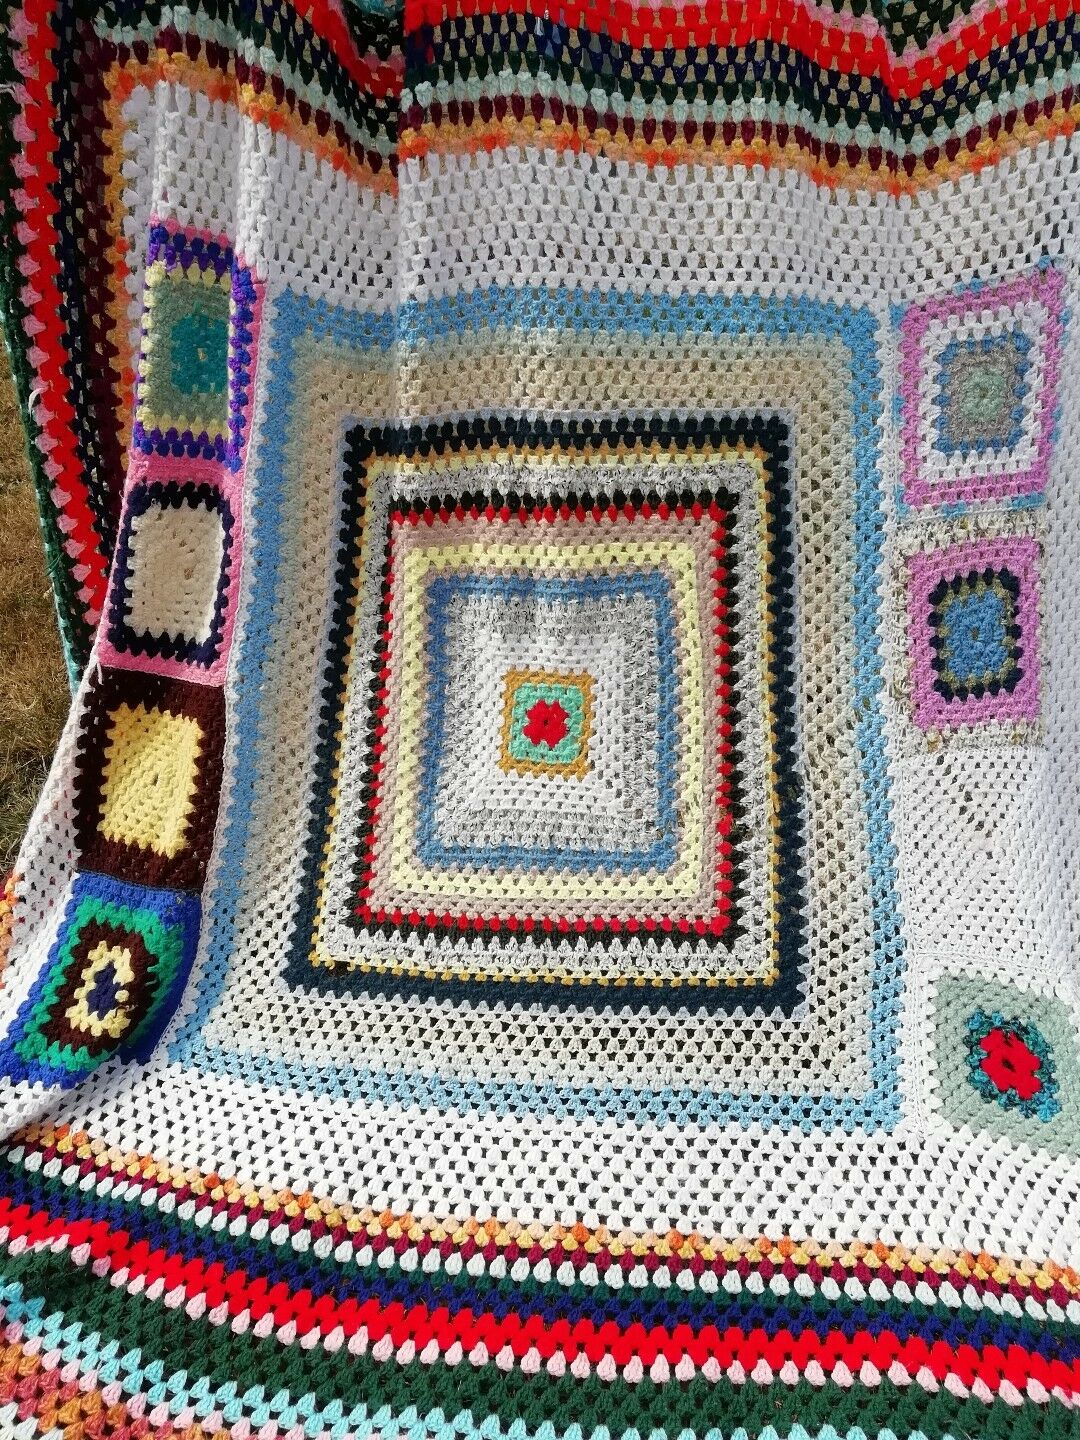 HUGE VINTAGE Multicolore rétro grand format CROCHET GRANNY Couverture Multicolore VINTAGE Hiver Throw a5e394